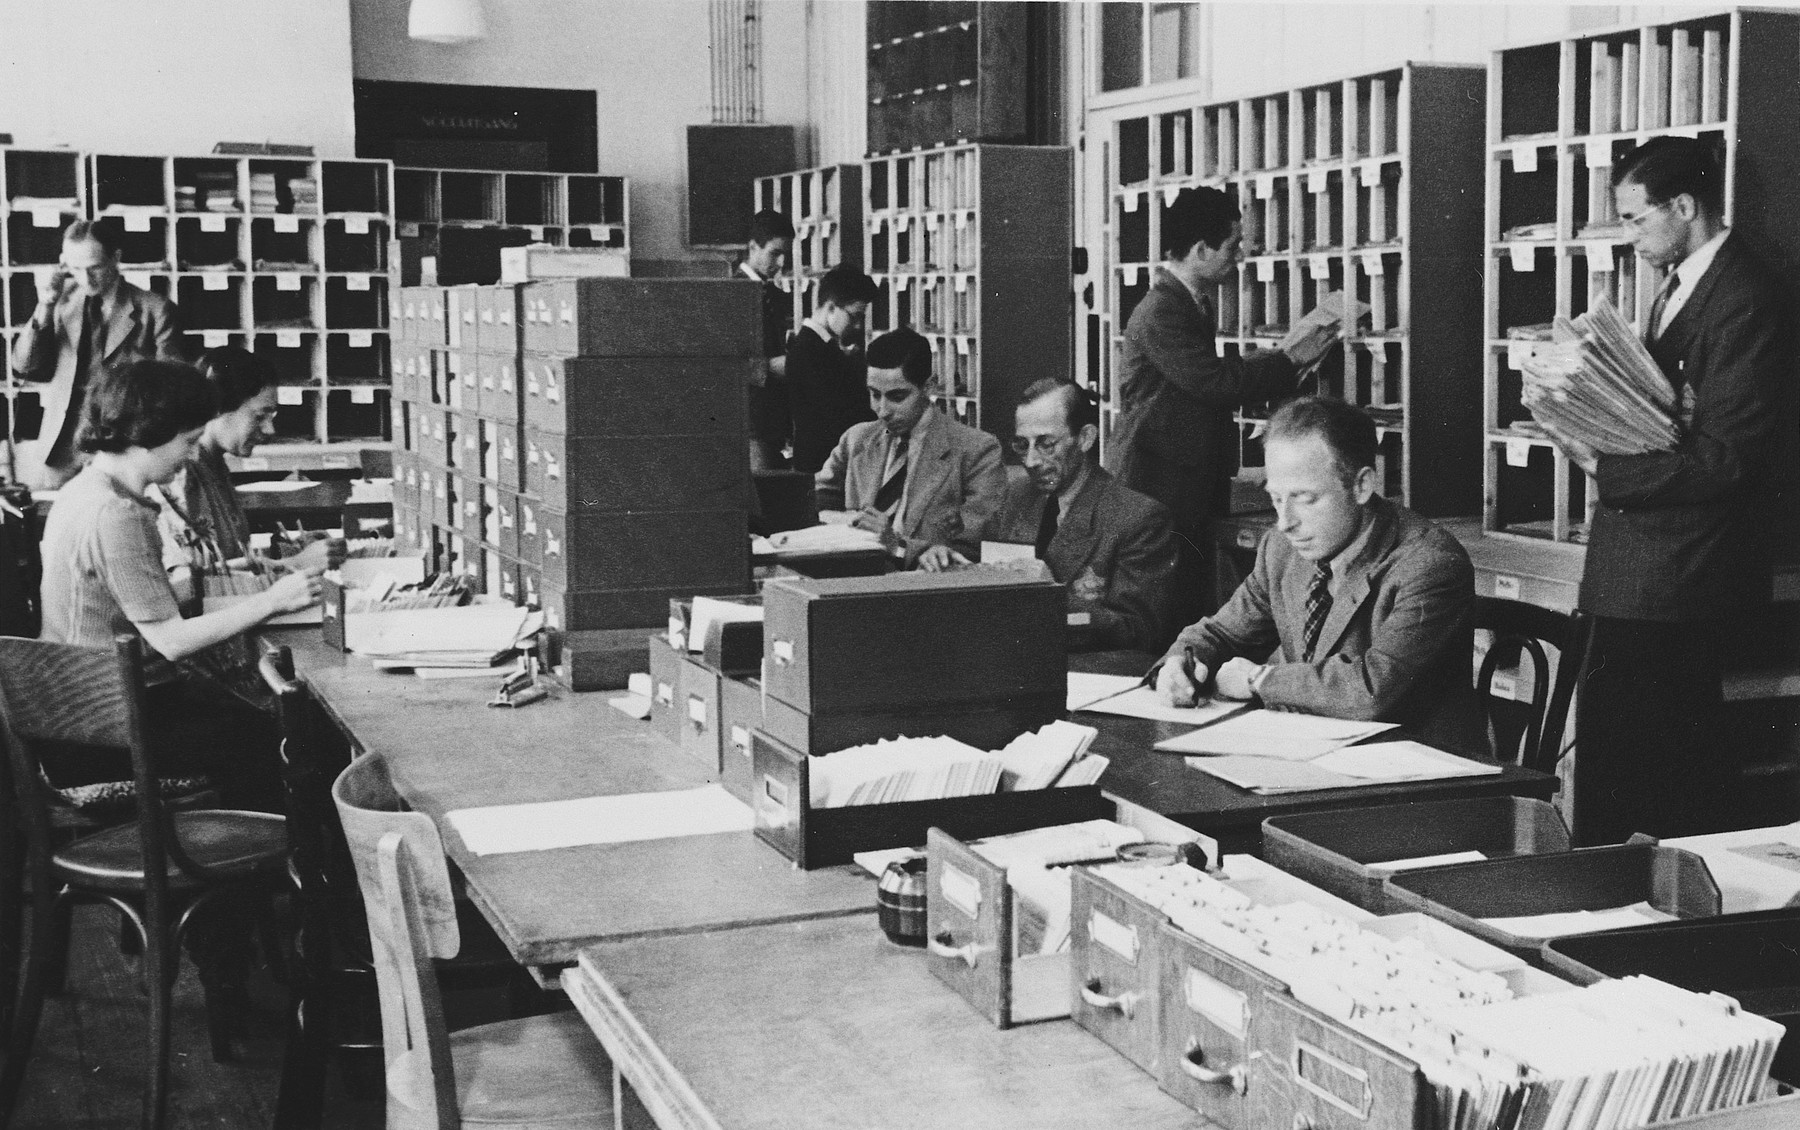 Workers sort and file papers and cards in the offices of the Joodse Raad in Amsterdam.